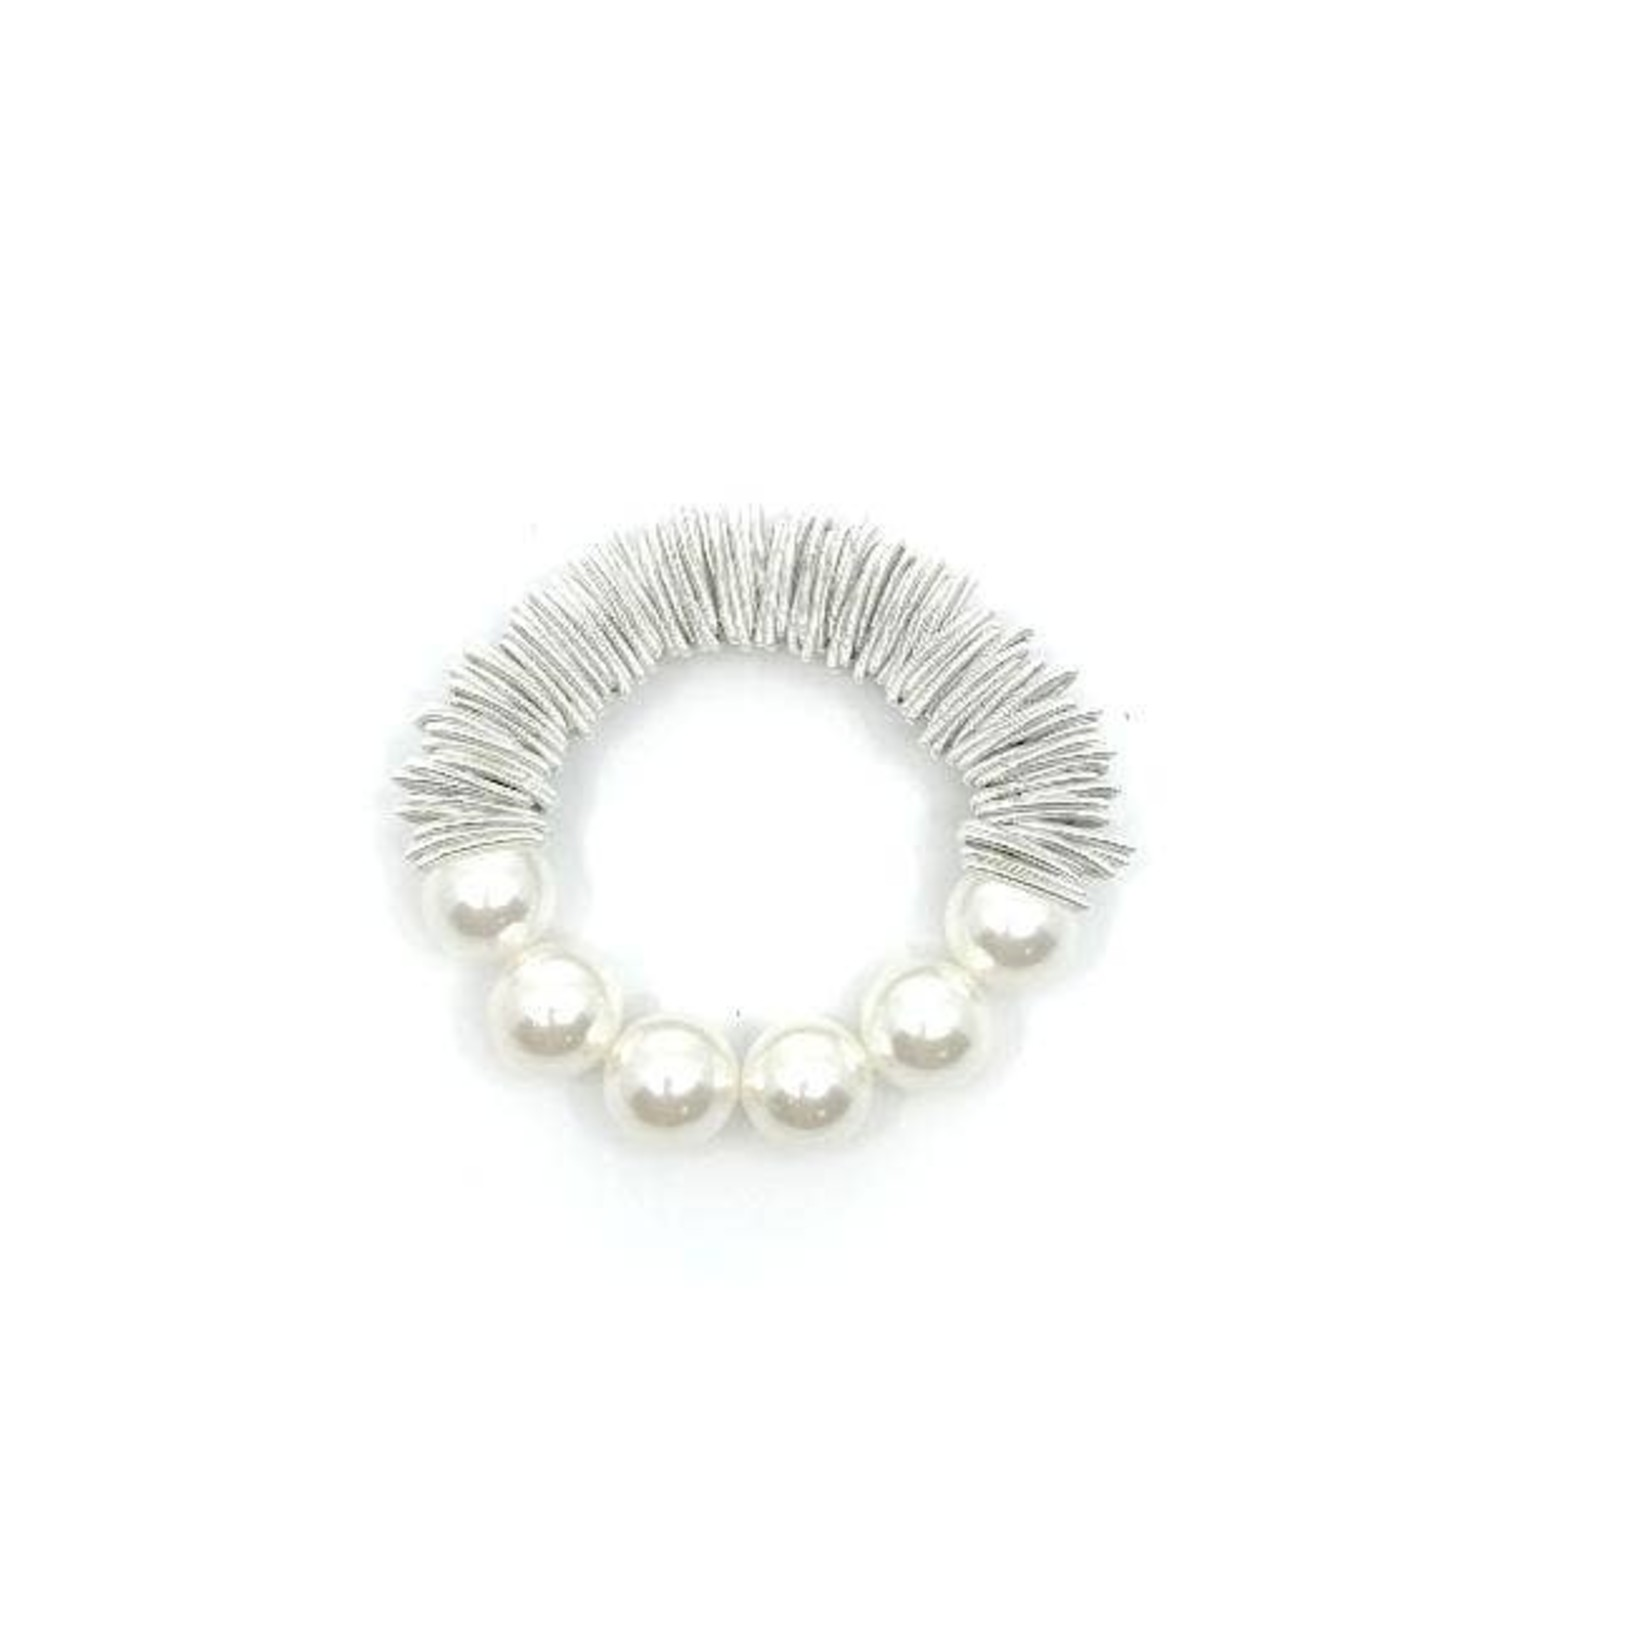 Sea Lily White PW Spring Ring Bracelet w/ Mother of Pearls